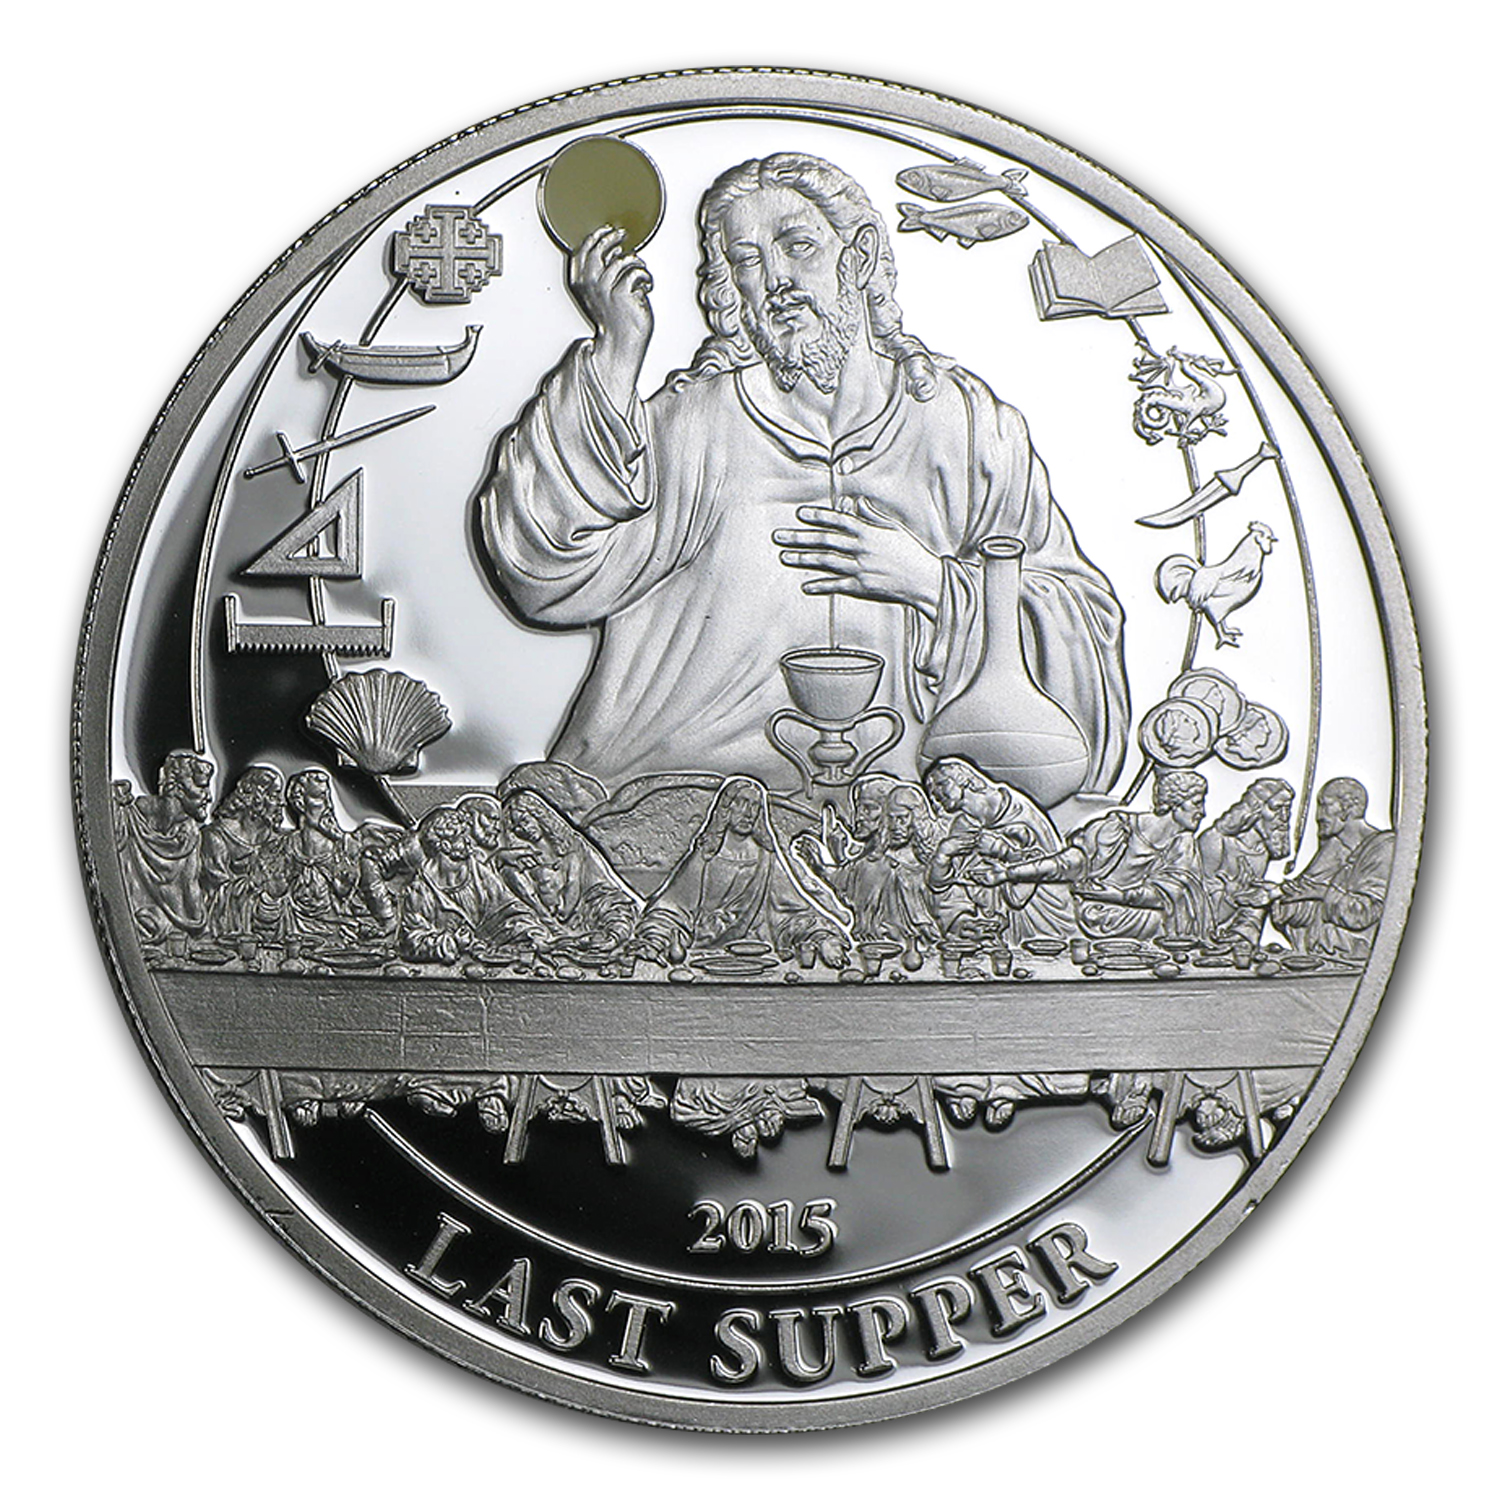 2015 Palau Proof Silver Biblical Stories Last Supper